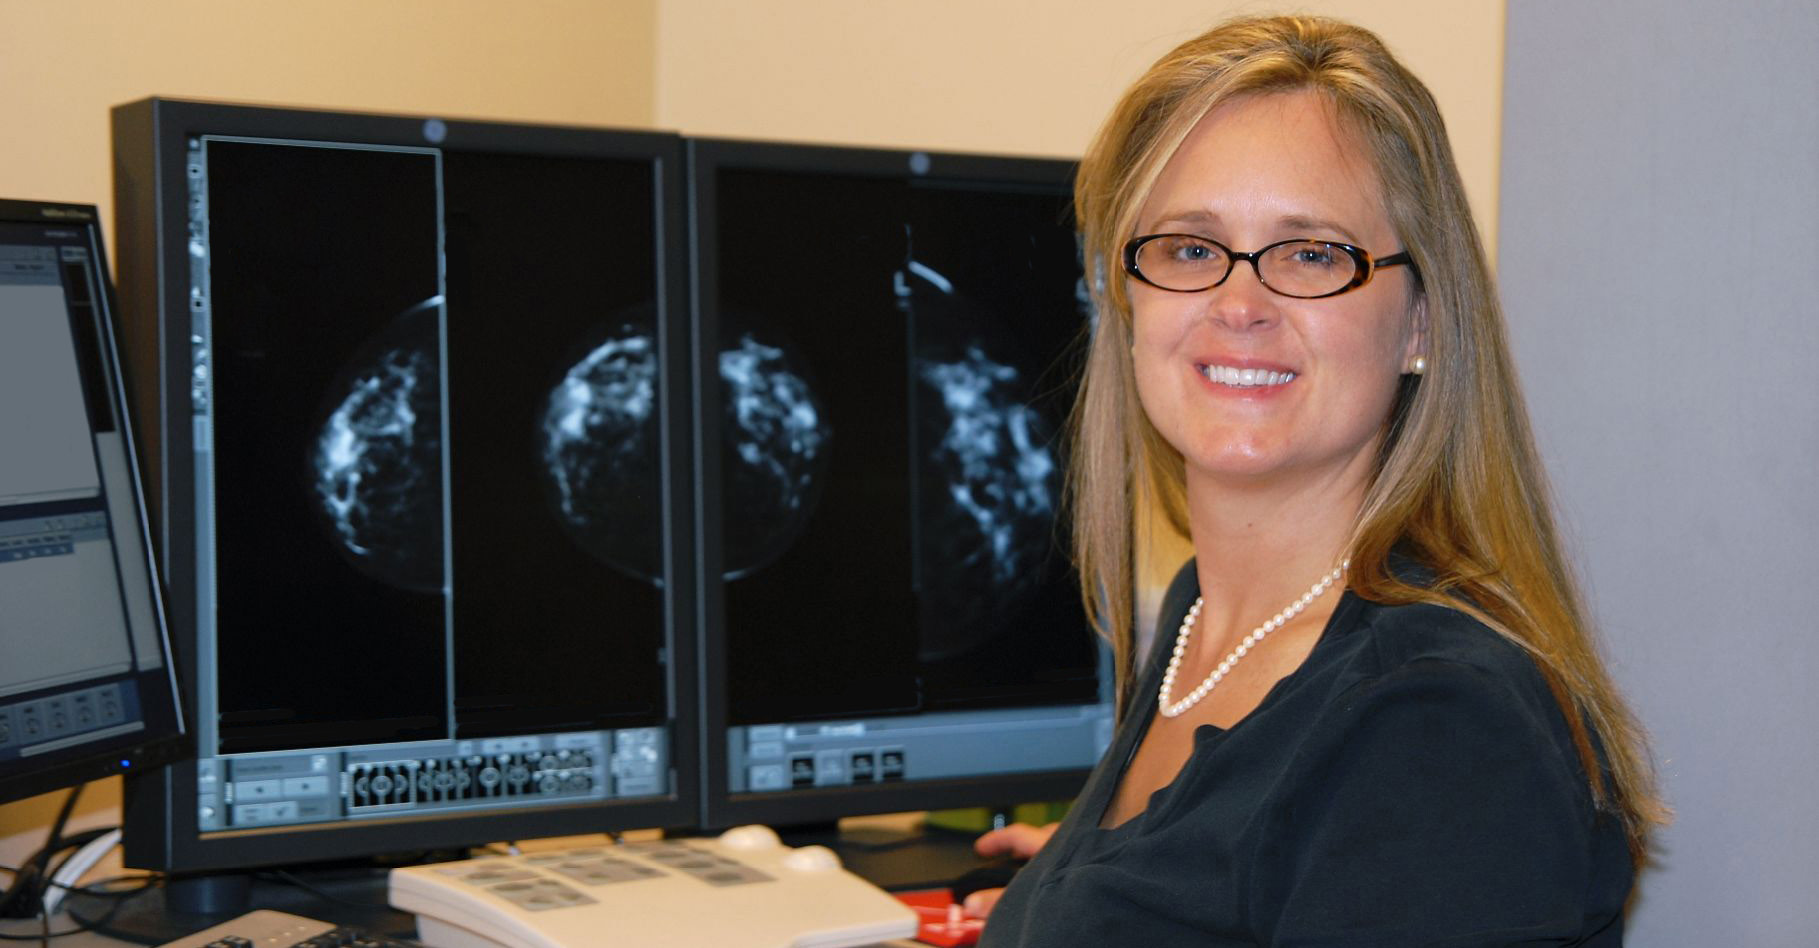 Take It from a Radiologist: Don't Delay Your Mammogram